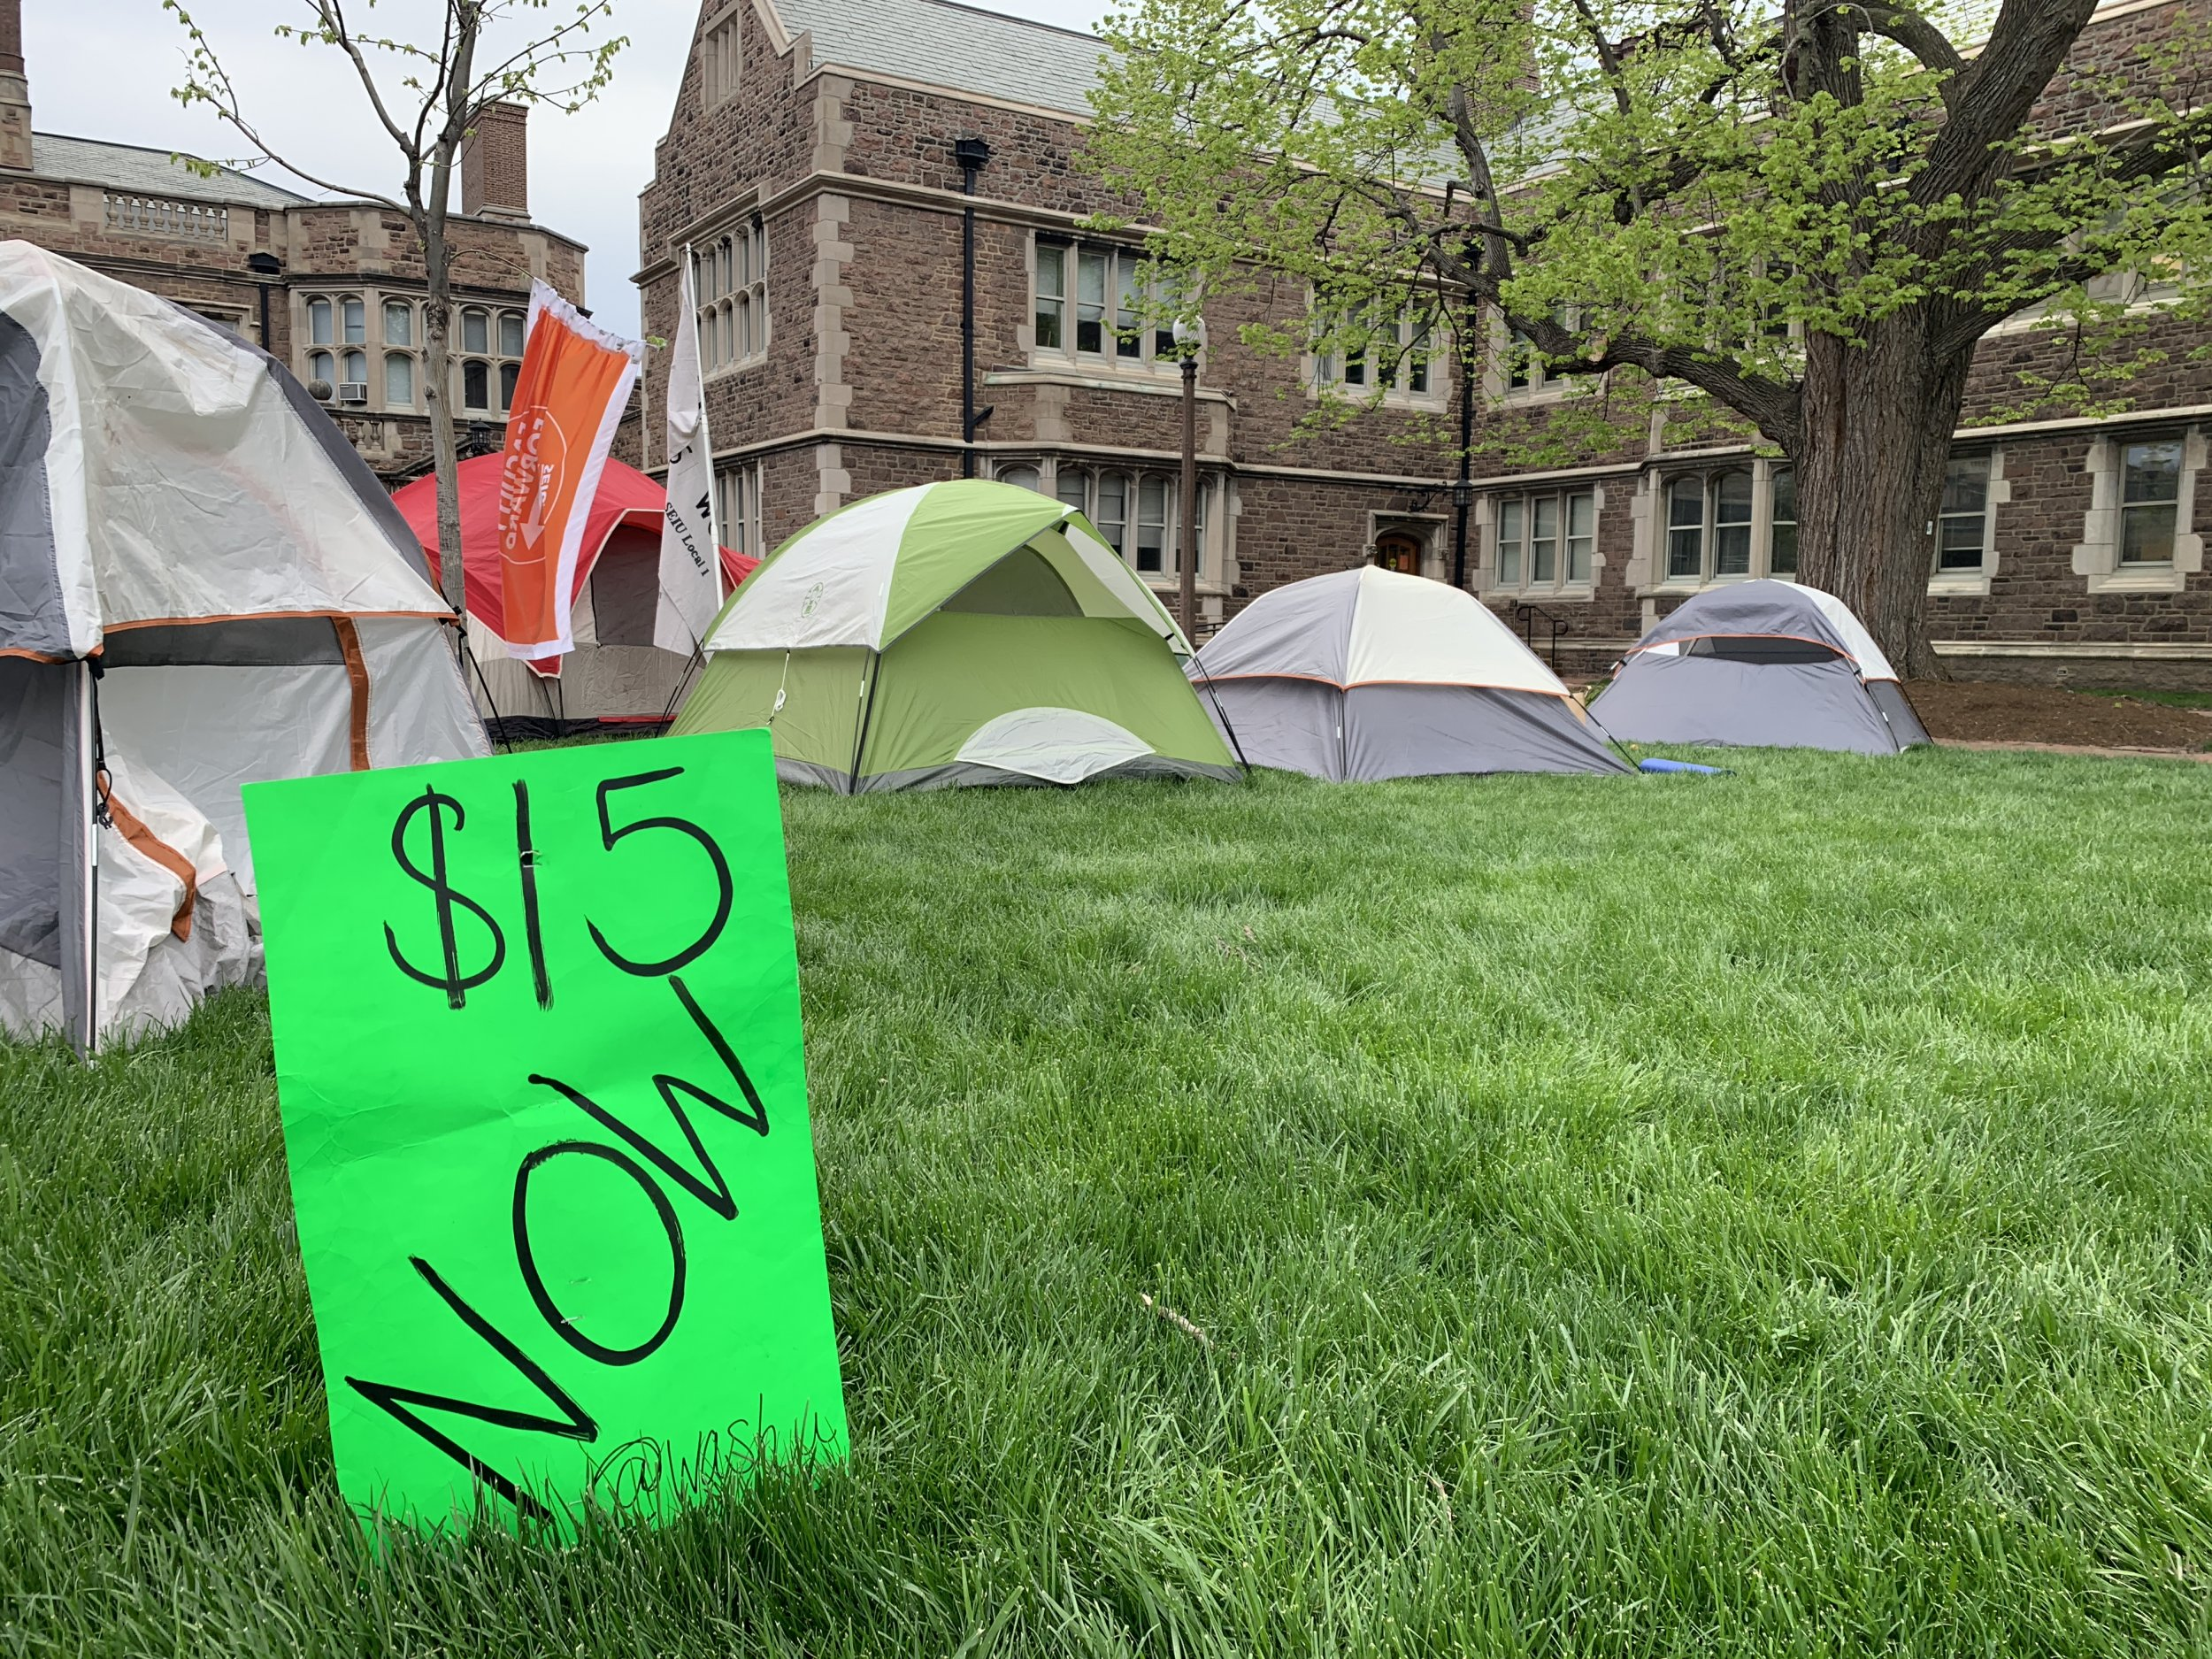 Washington University in St. Louis graduate students union living wage protest tent city